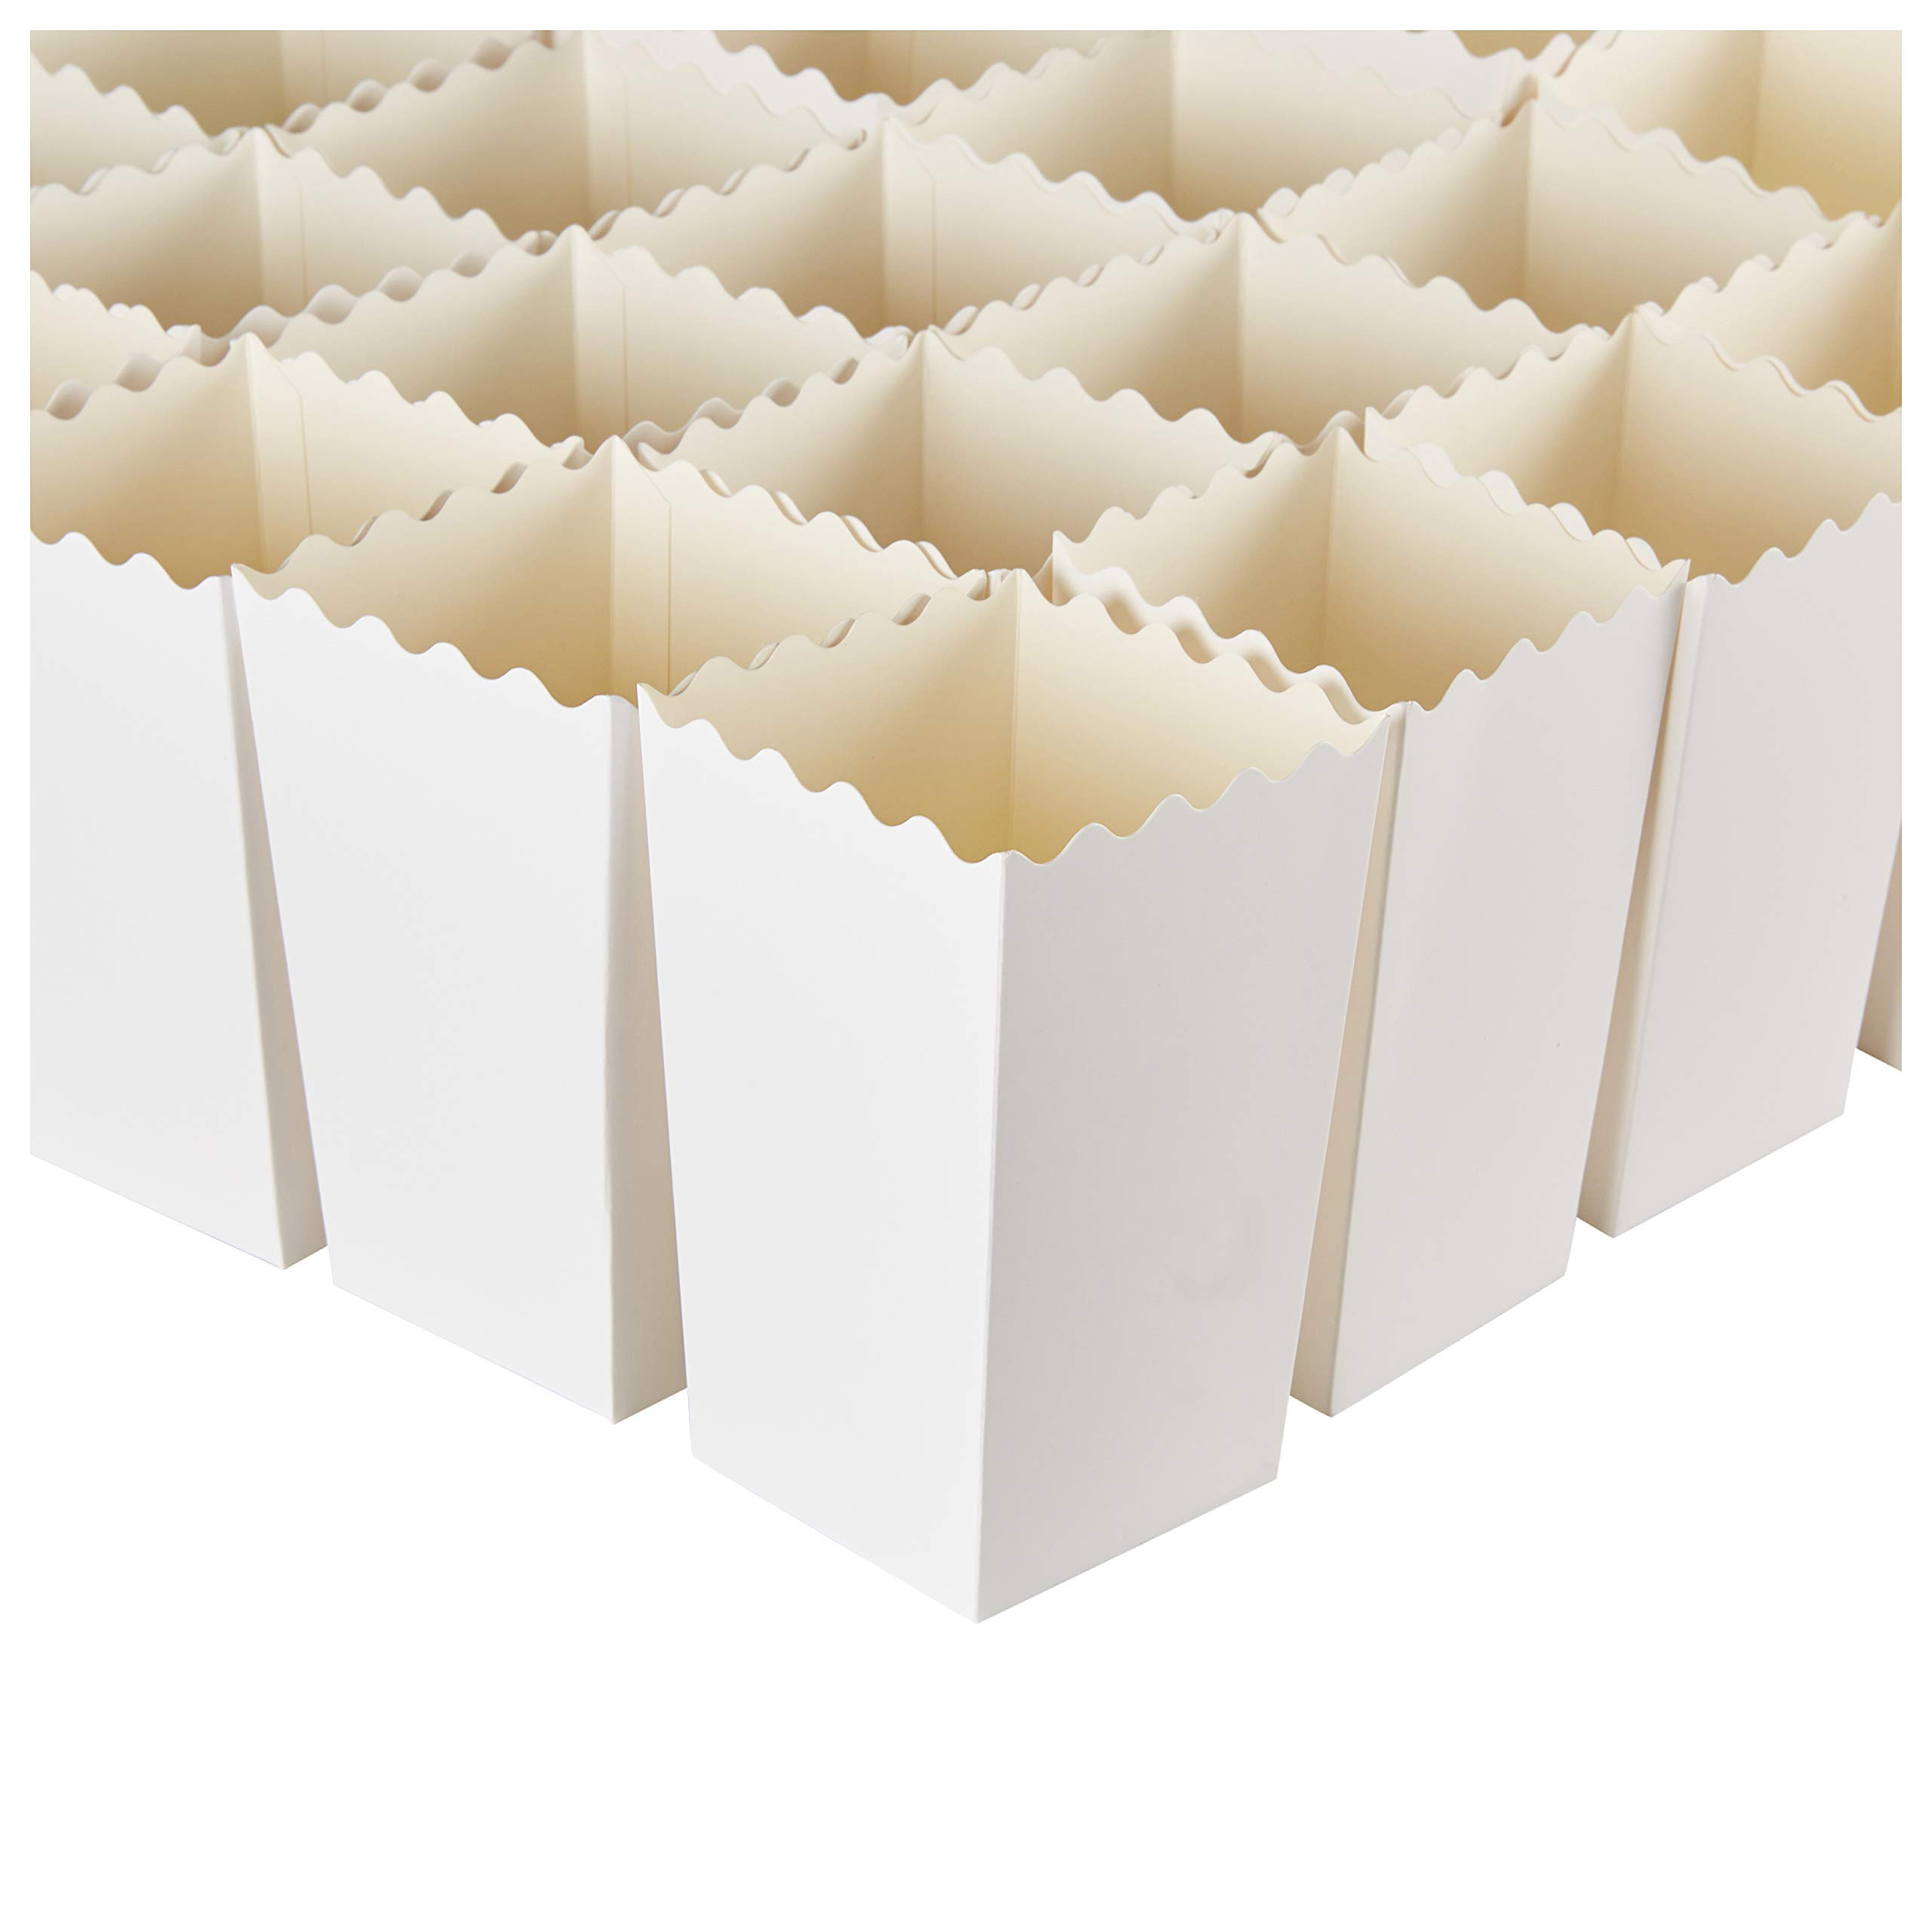 Set of 100 Popcorn Favor Boxes - Carnival Parties 20oz Mini Paper Popcorn and Candy Containers, Party Supplies for Movie Nights, Birthday, Baby Shower, Plain White - 3.3 x 5.5 x 3.3 Inches by Blue Panda